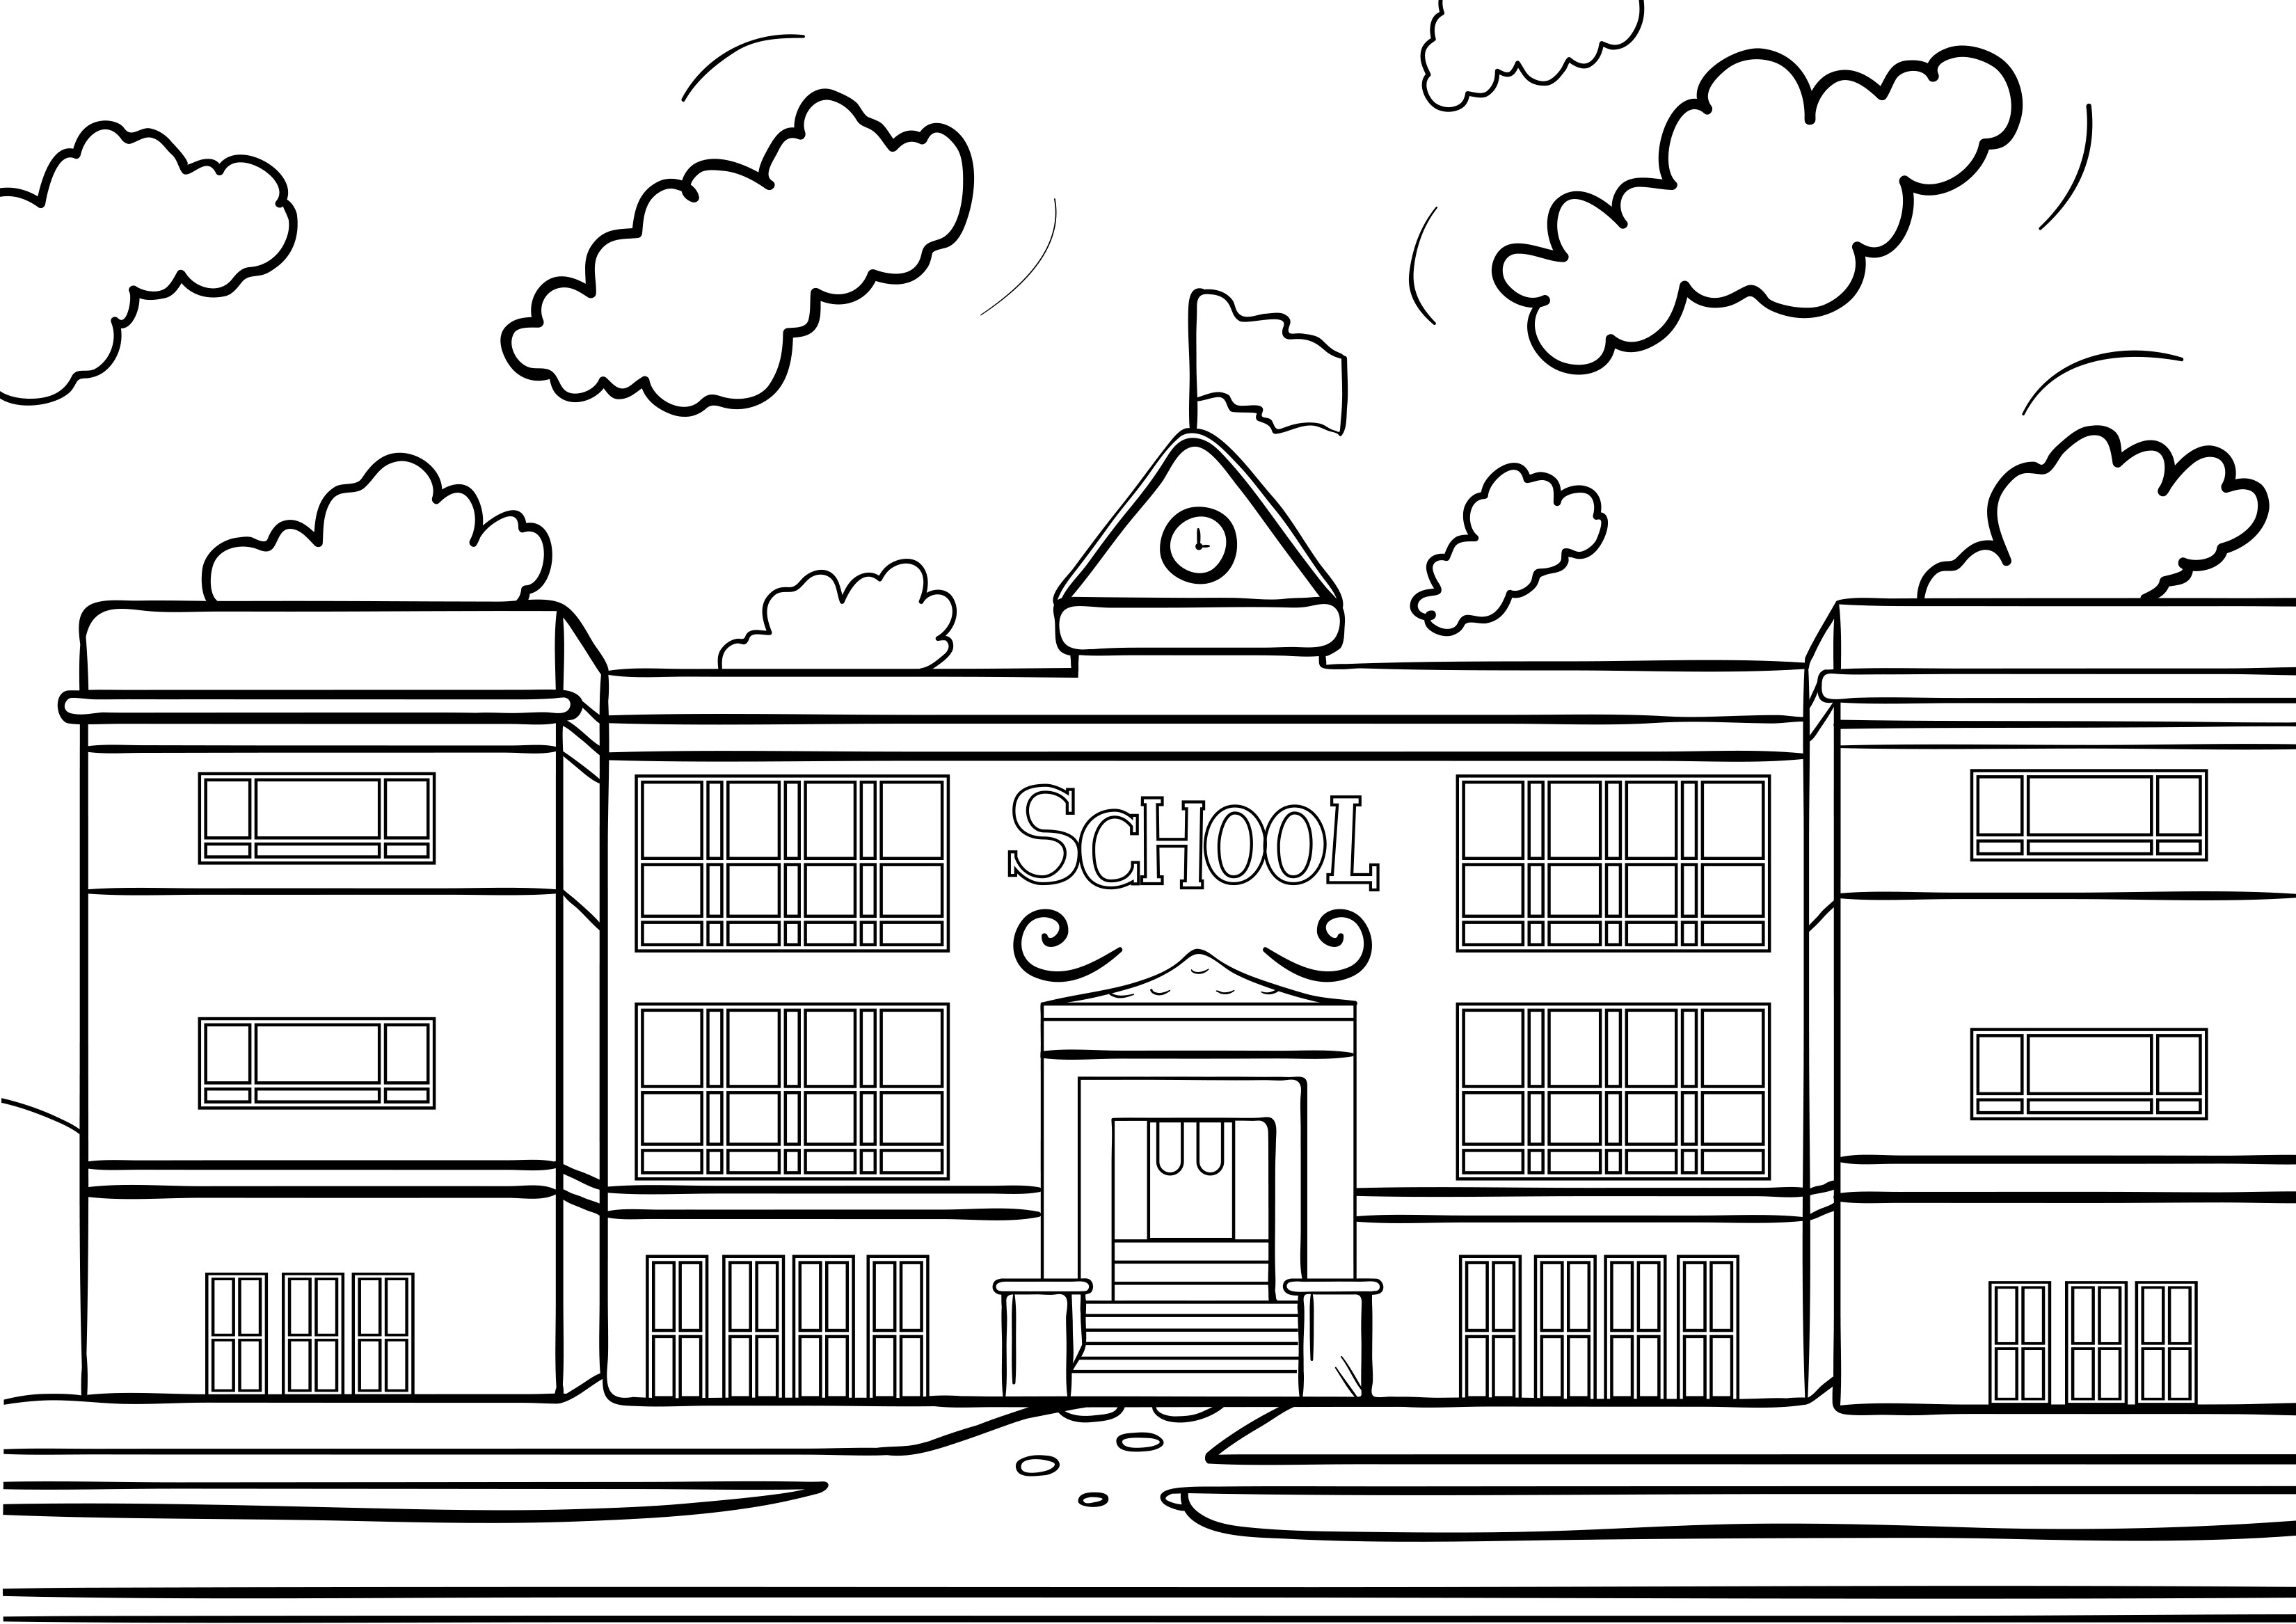 School House Coloring Pages to Print Of Fresh First Day School Coloring Sheets Free Printable Pages Kids Printable